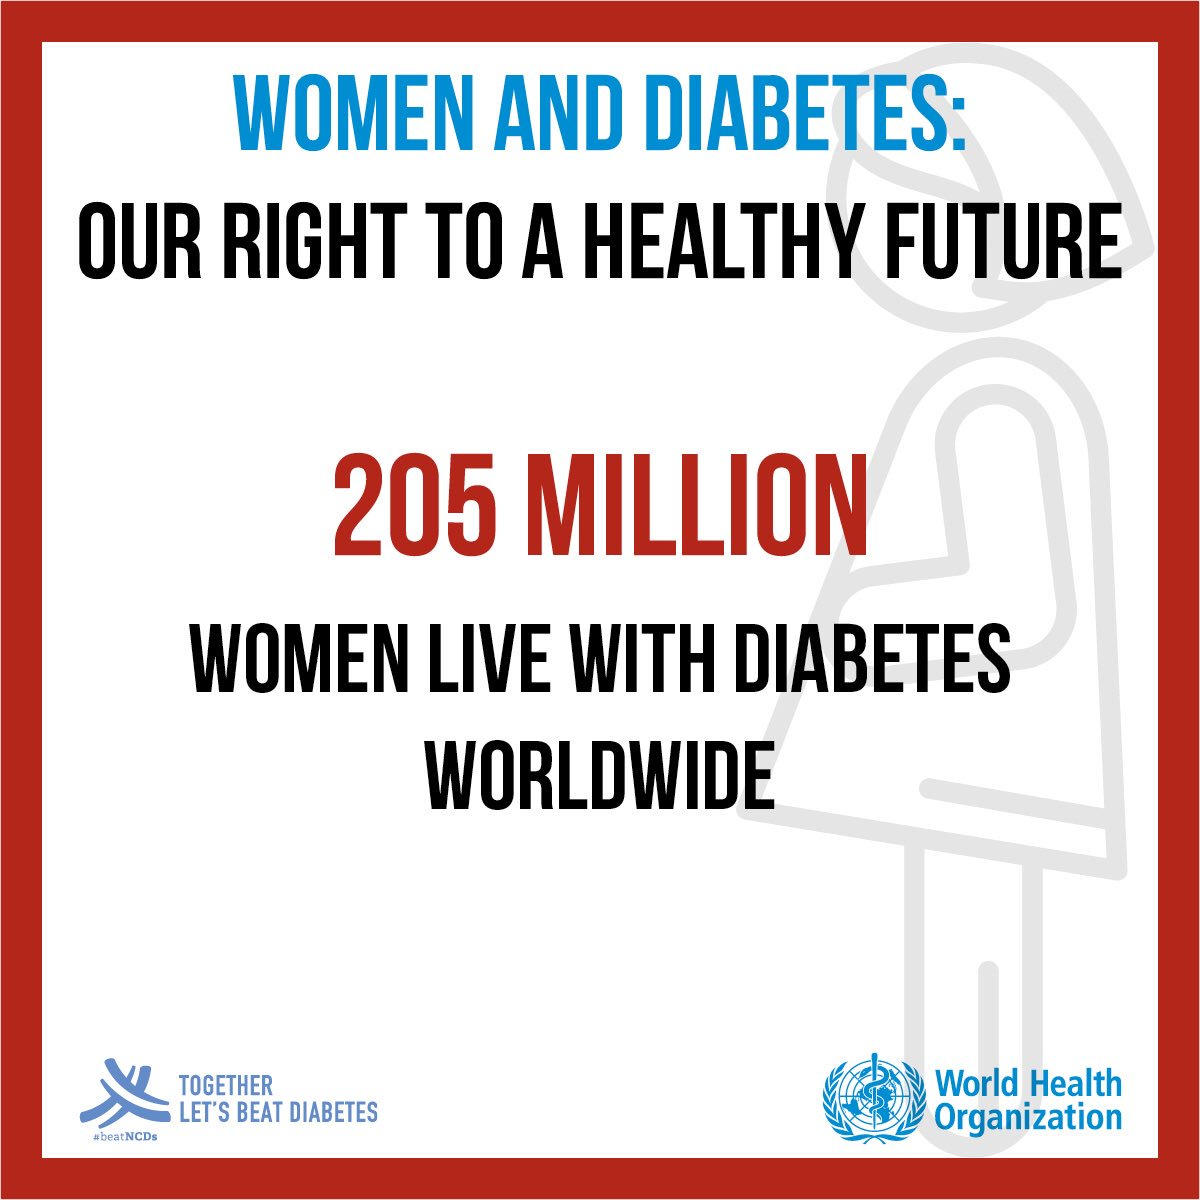 test Twitter Media - Today is #WorldDiabetesDay. 205 million women live with #diabetes worldwide. We stand for women's right to a healthy future! https://t.co/4fvlsTIfWt https://t.co/lNnmezxoyK